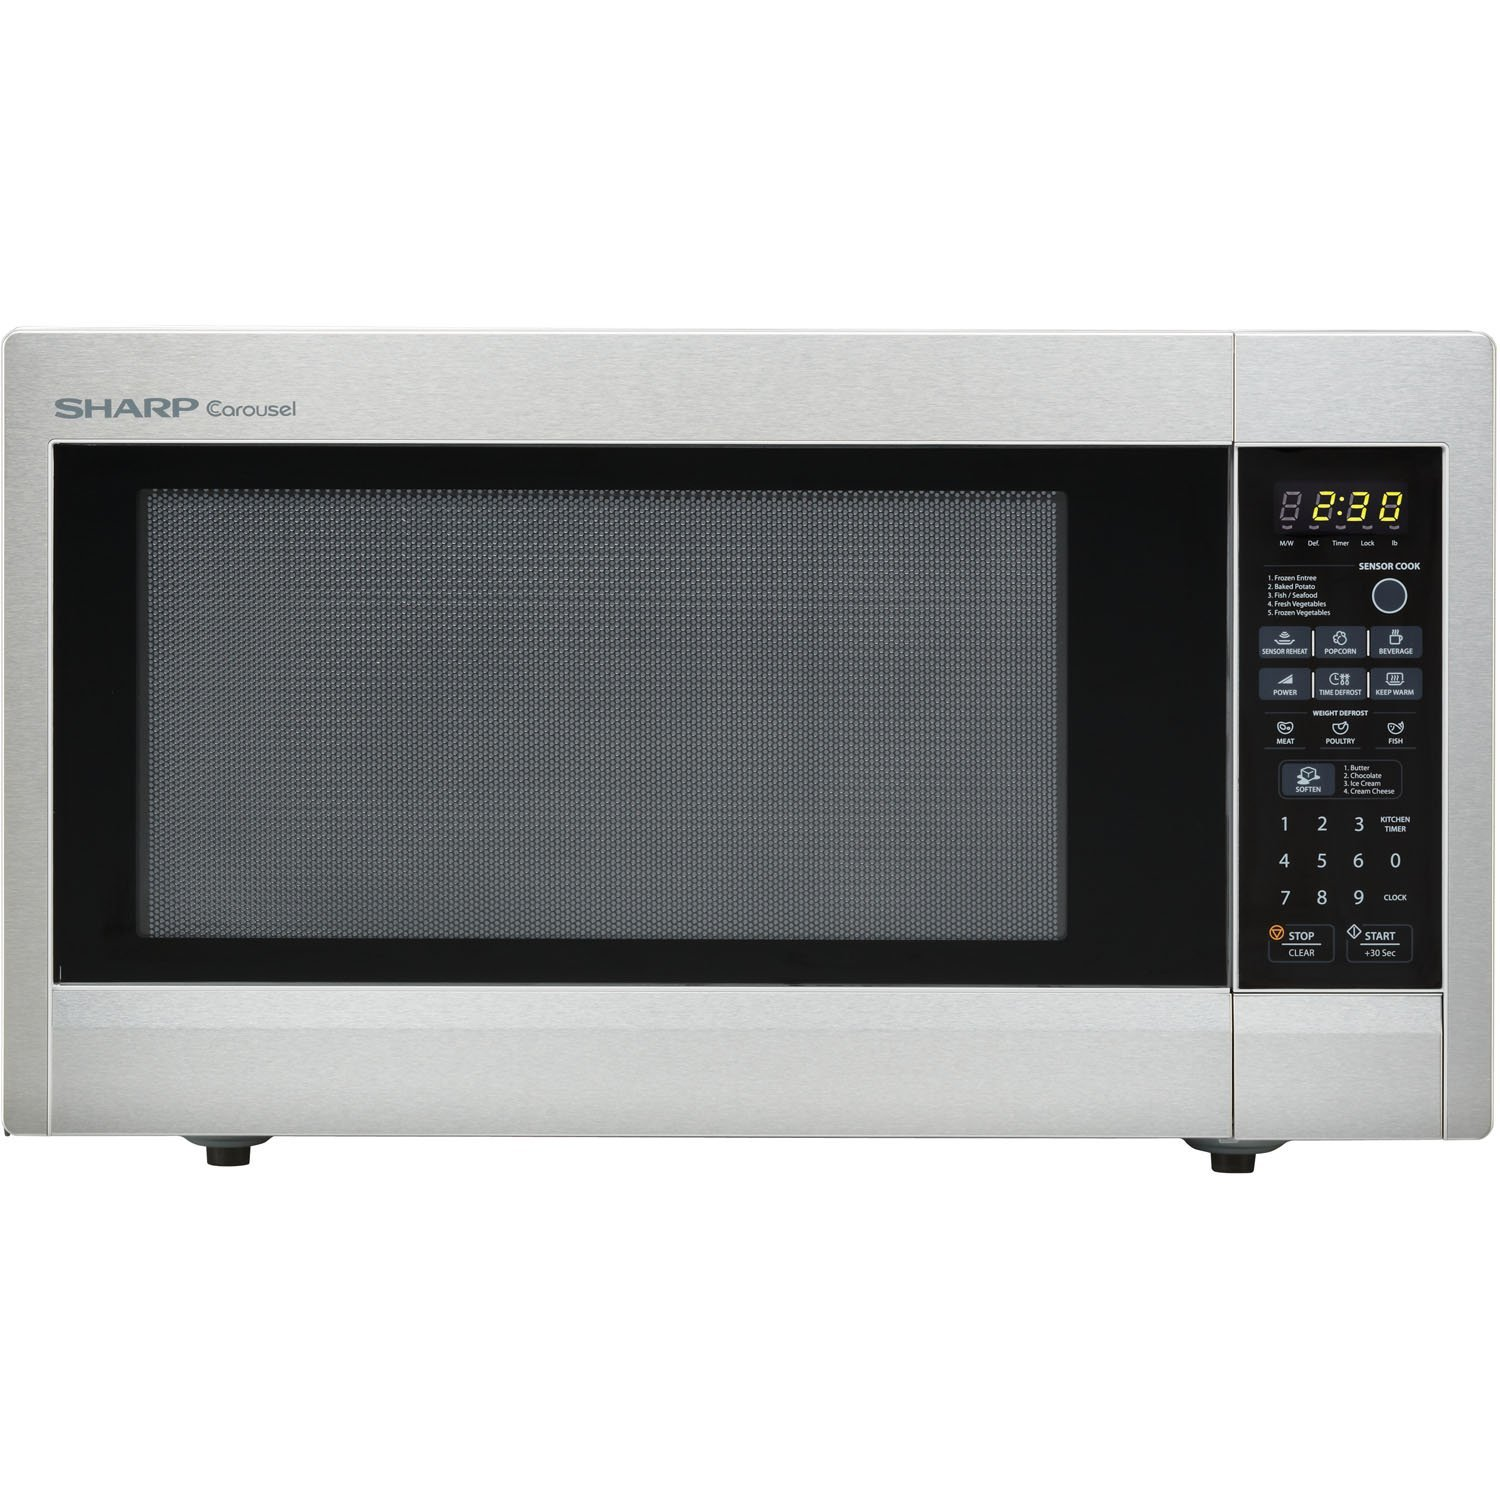 Sharp Countertop Microwave Dimensions : ... : SHARP, Model: R651ZS, Style: 2.2 cu. ft. Countertop Microwave Oven